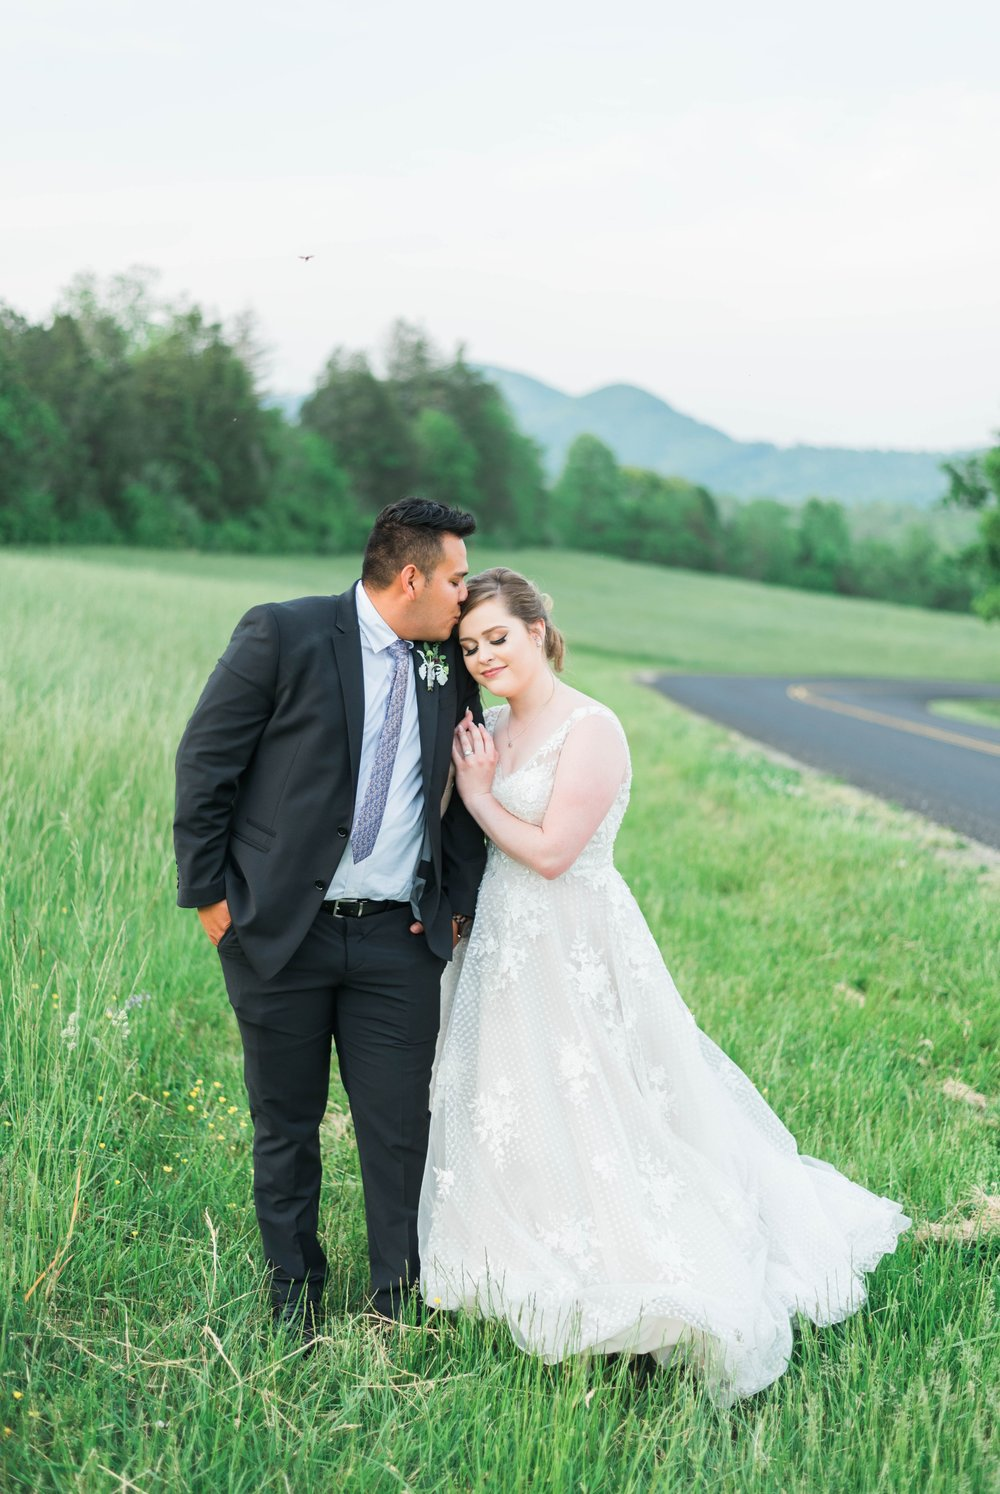 Jillian+Abi_OakridgeEstate_Wedding_VirginiaWeddingPhotographer_SpringWedding 2.jpg